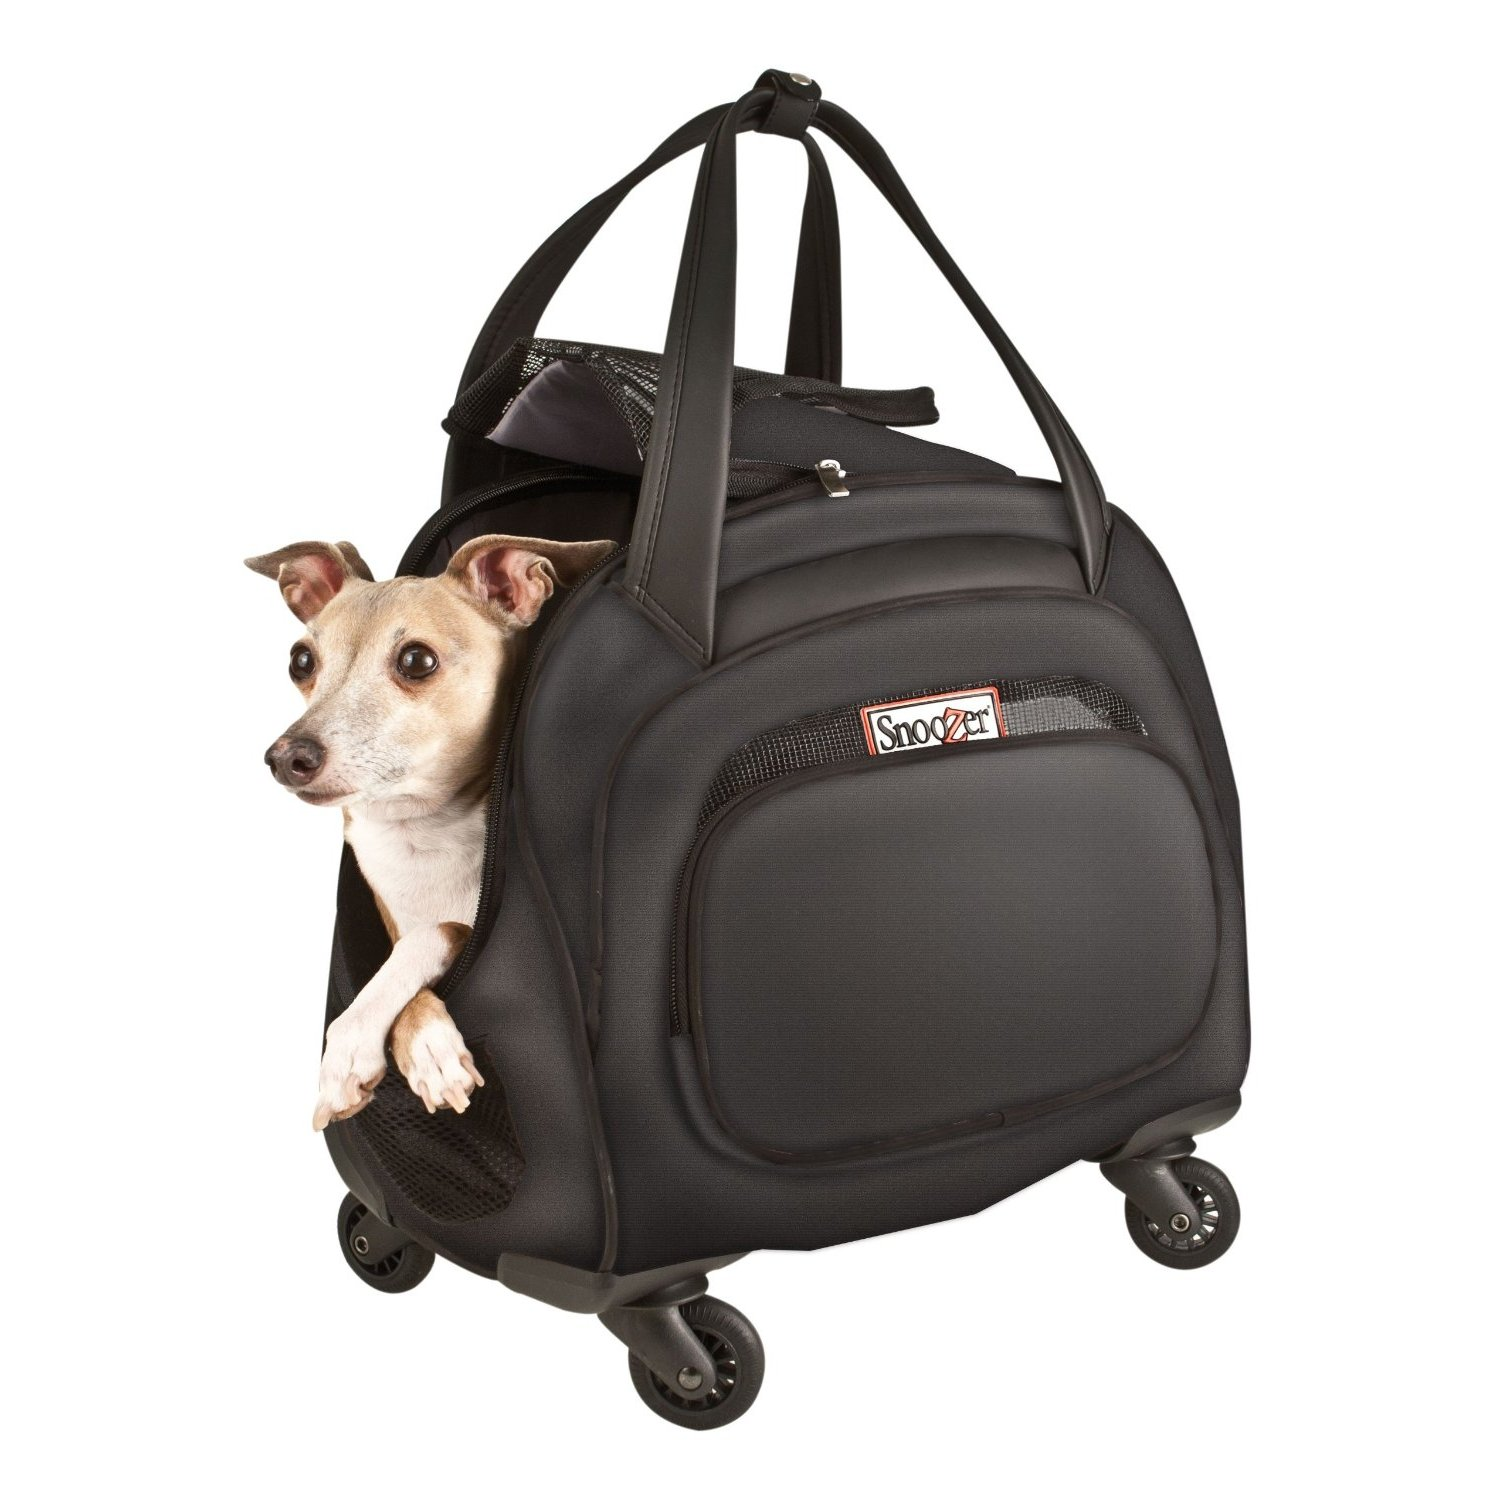 Cooper 4 Wheeled Pet Bag Houndabout